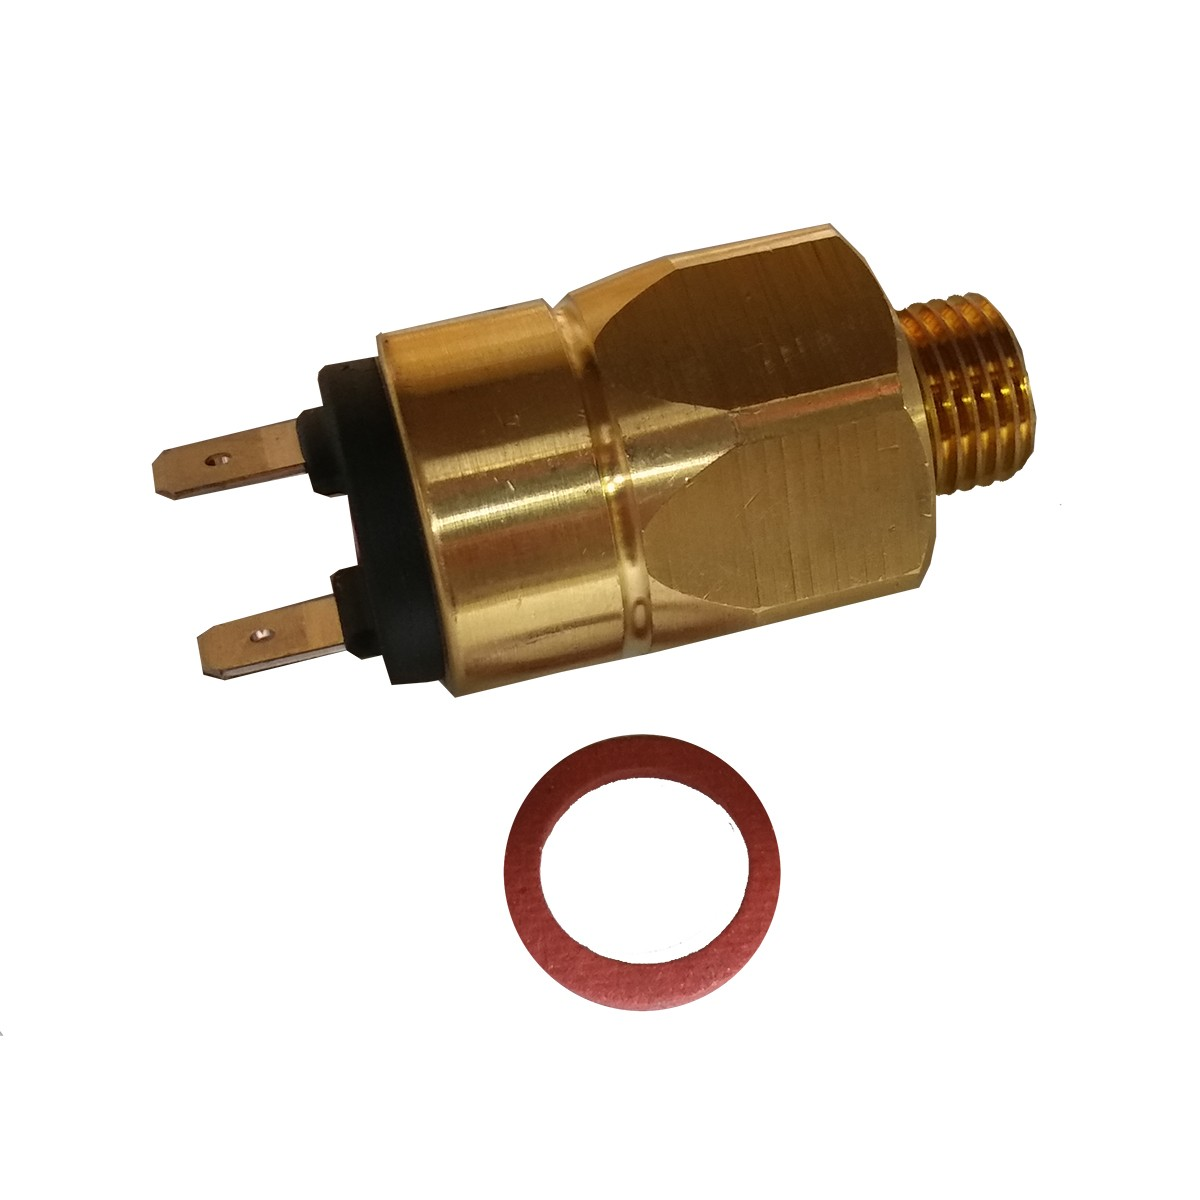 Indutherm Pressure Switch Closing Contact Adjusted 1.5 Bar